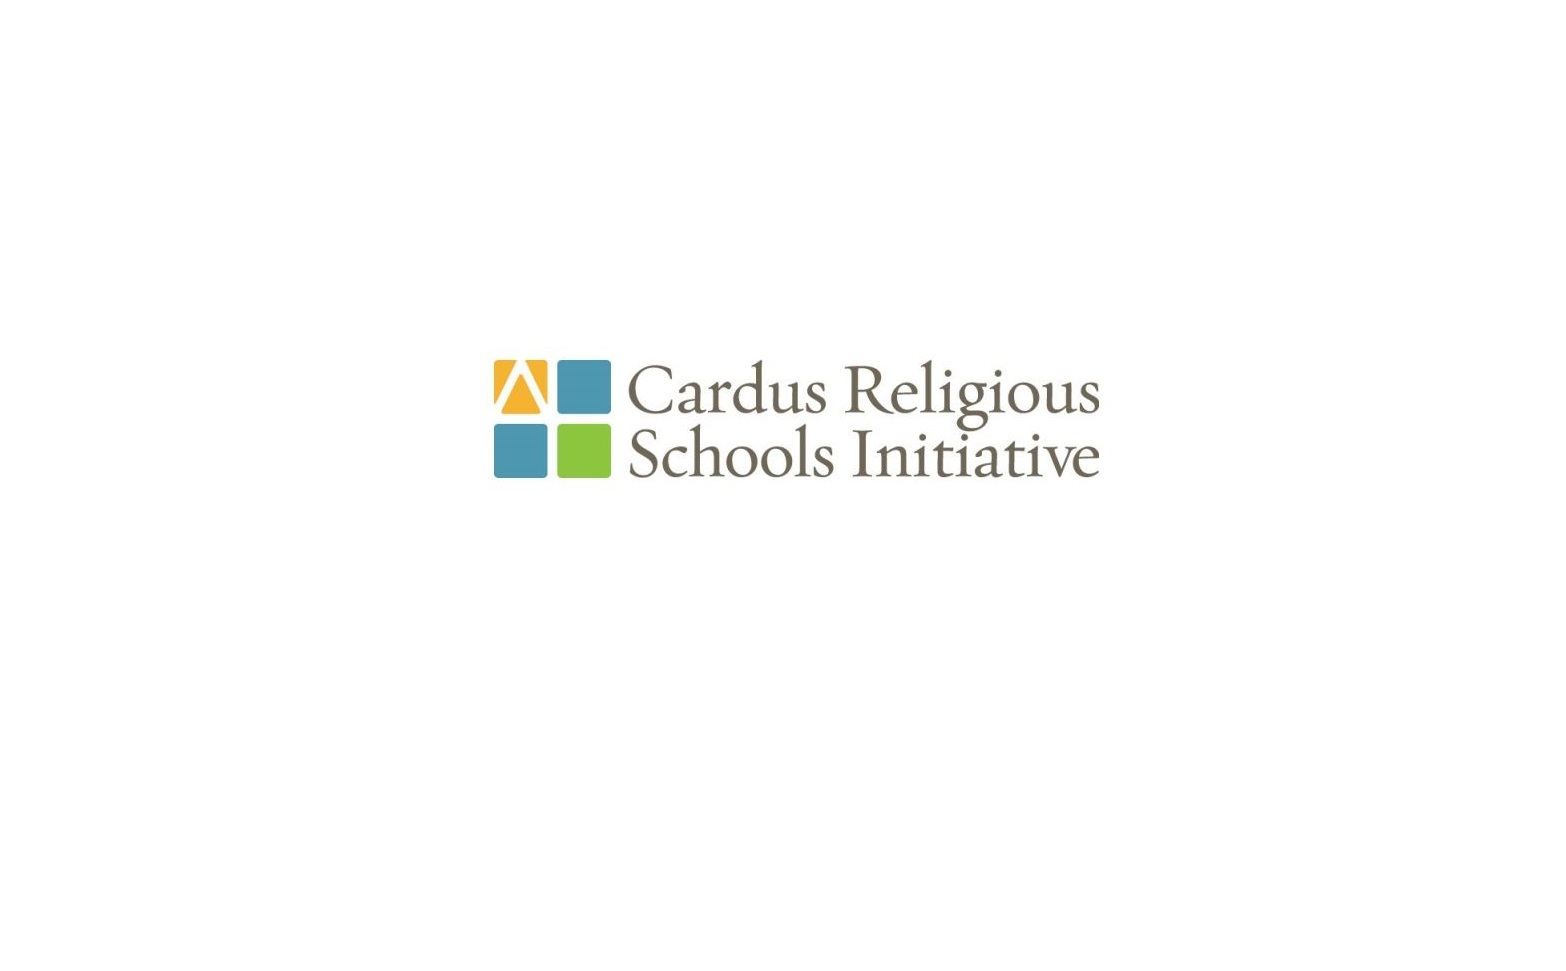 Homeschooling and Young Adult Outcomes: Evidence from the 2011 and 2014 Cardus Education Survey